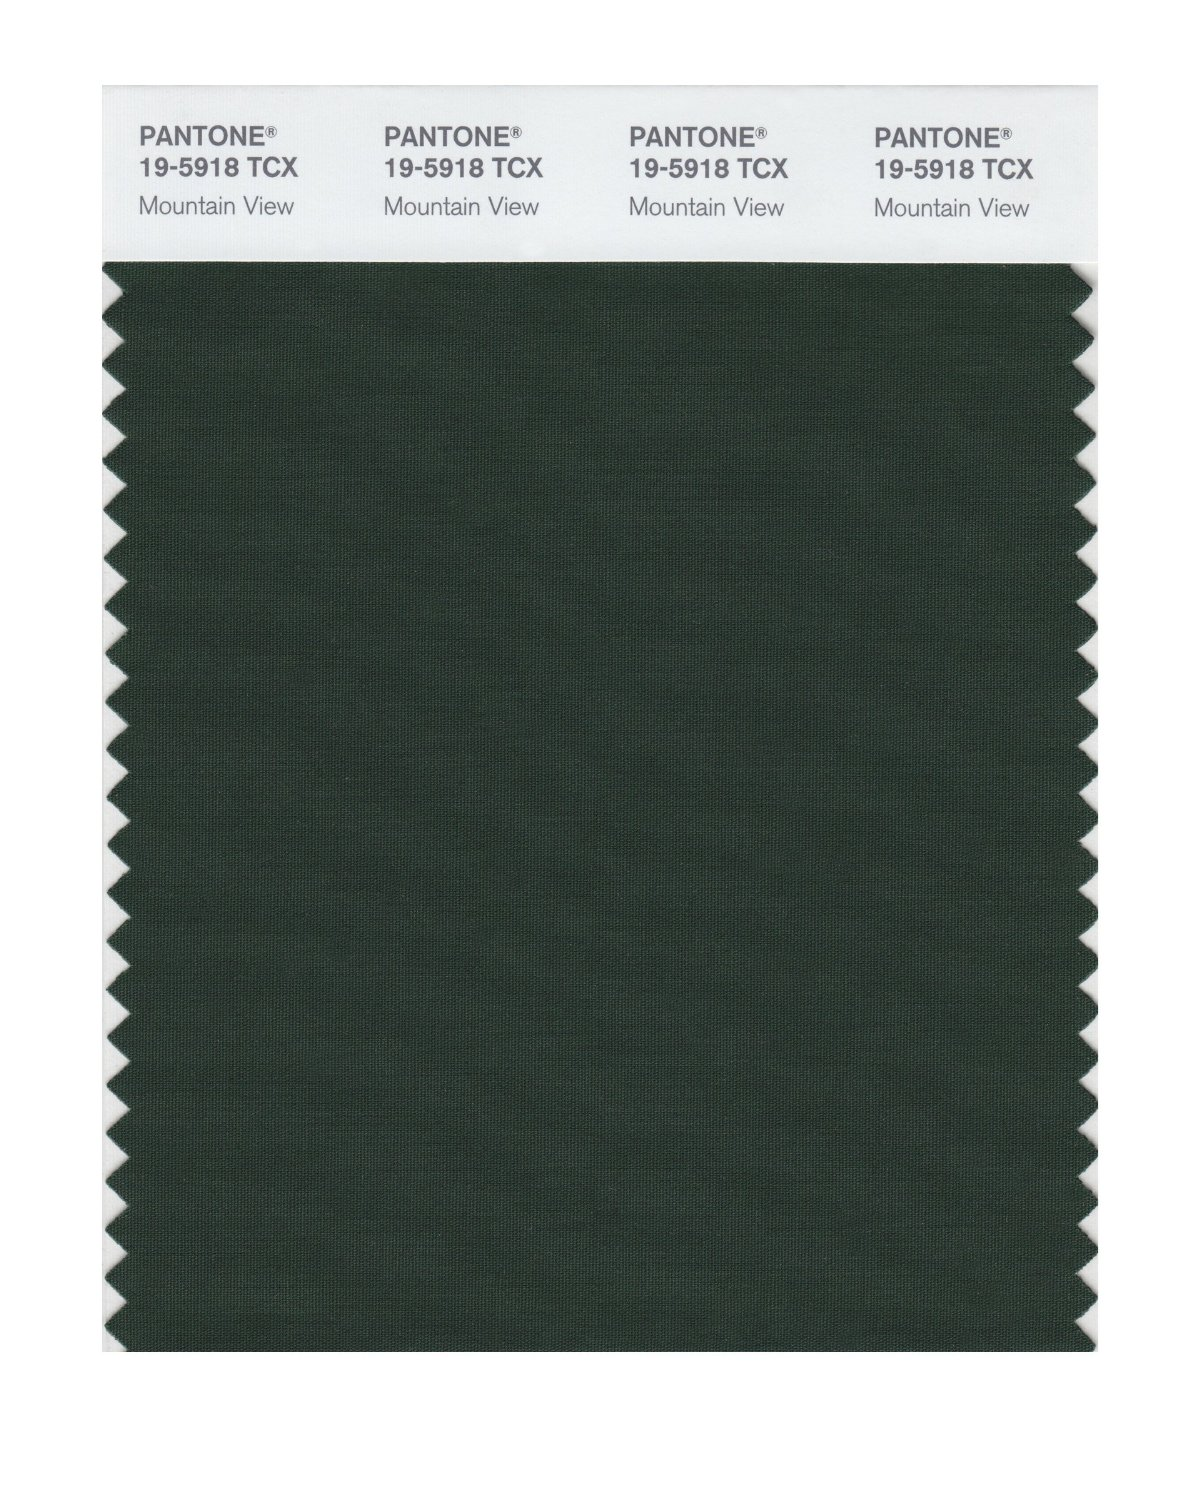 Pantone Smart Swatch 19-5918 Mountain View